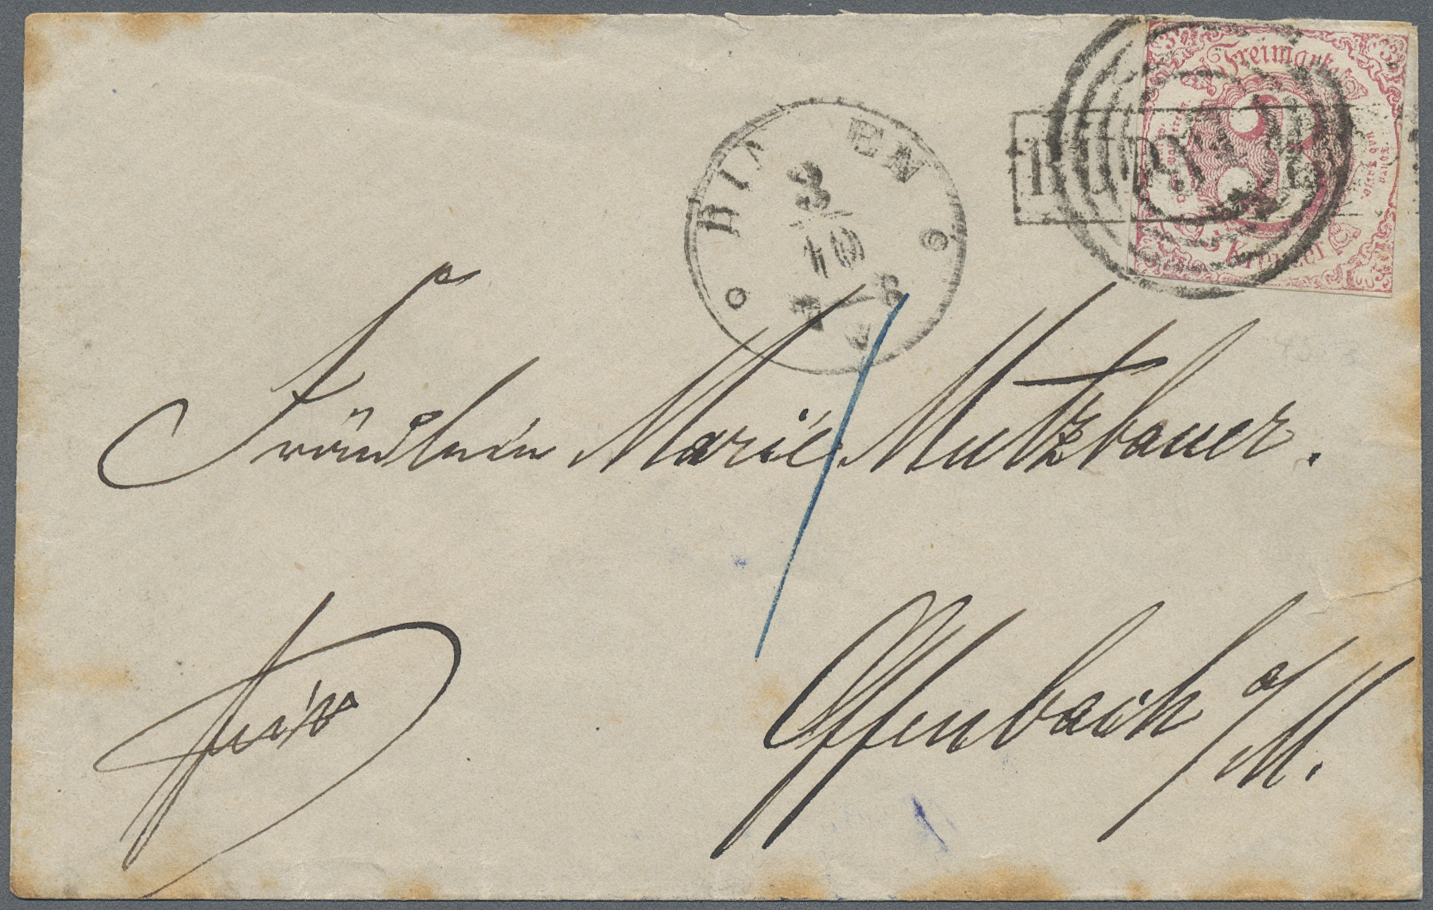 Lot 16448 - Thurn & Taxis - Landpoststempel  -  Auktionshaus Christoph Gärtner GmbH & Co. KG Sale #45- GERMANY